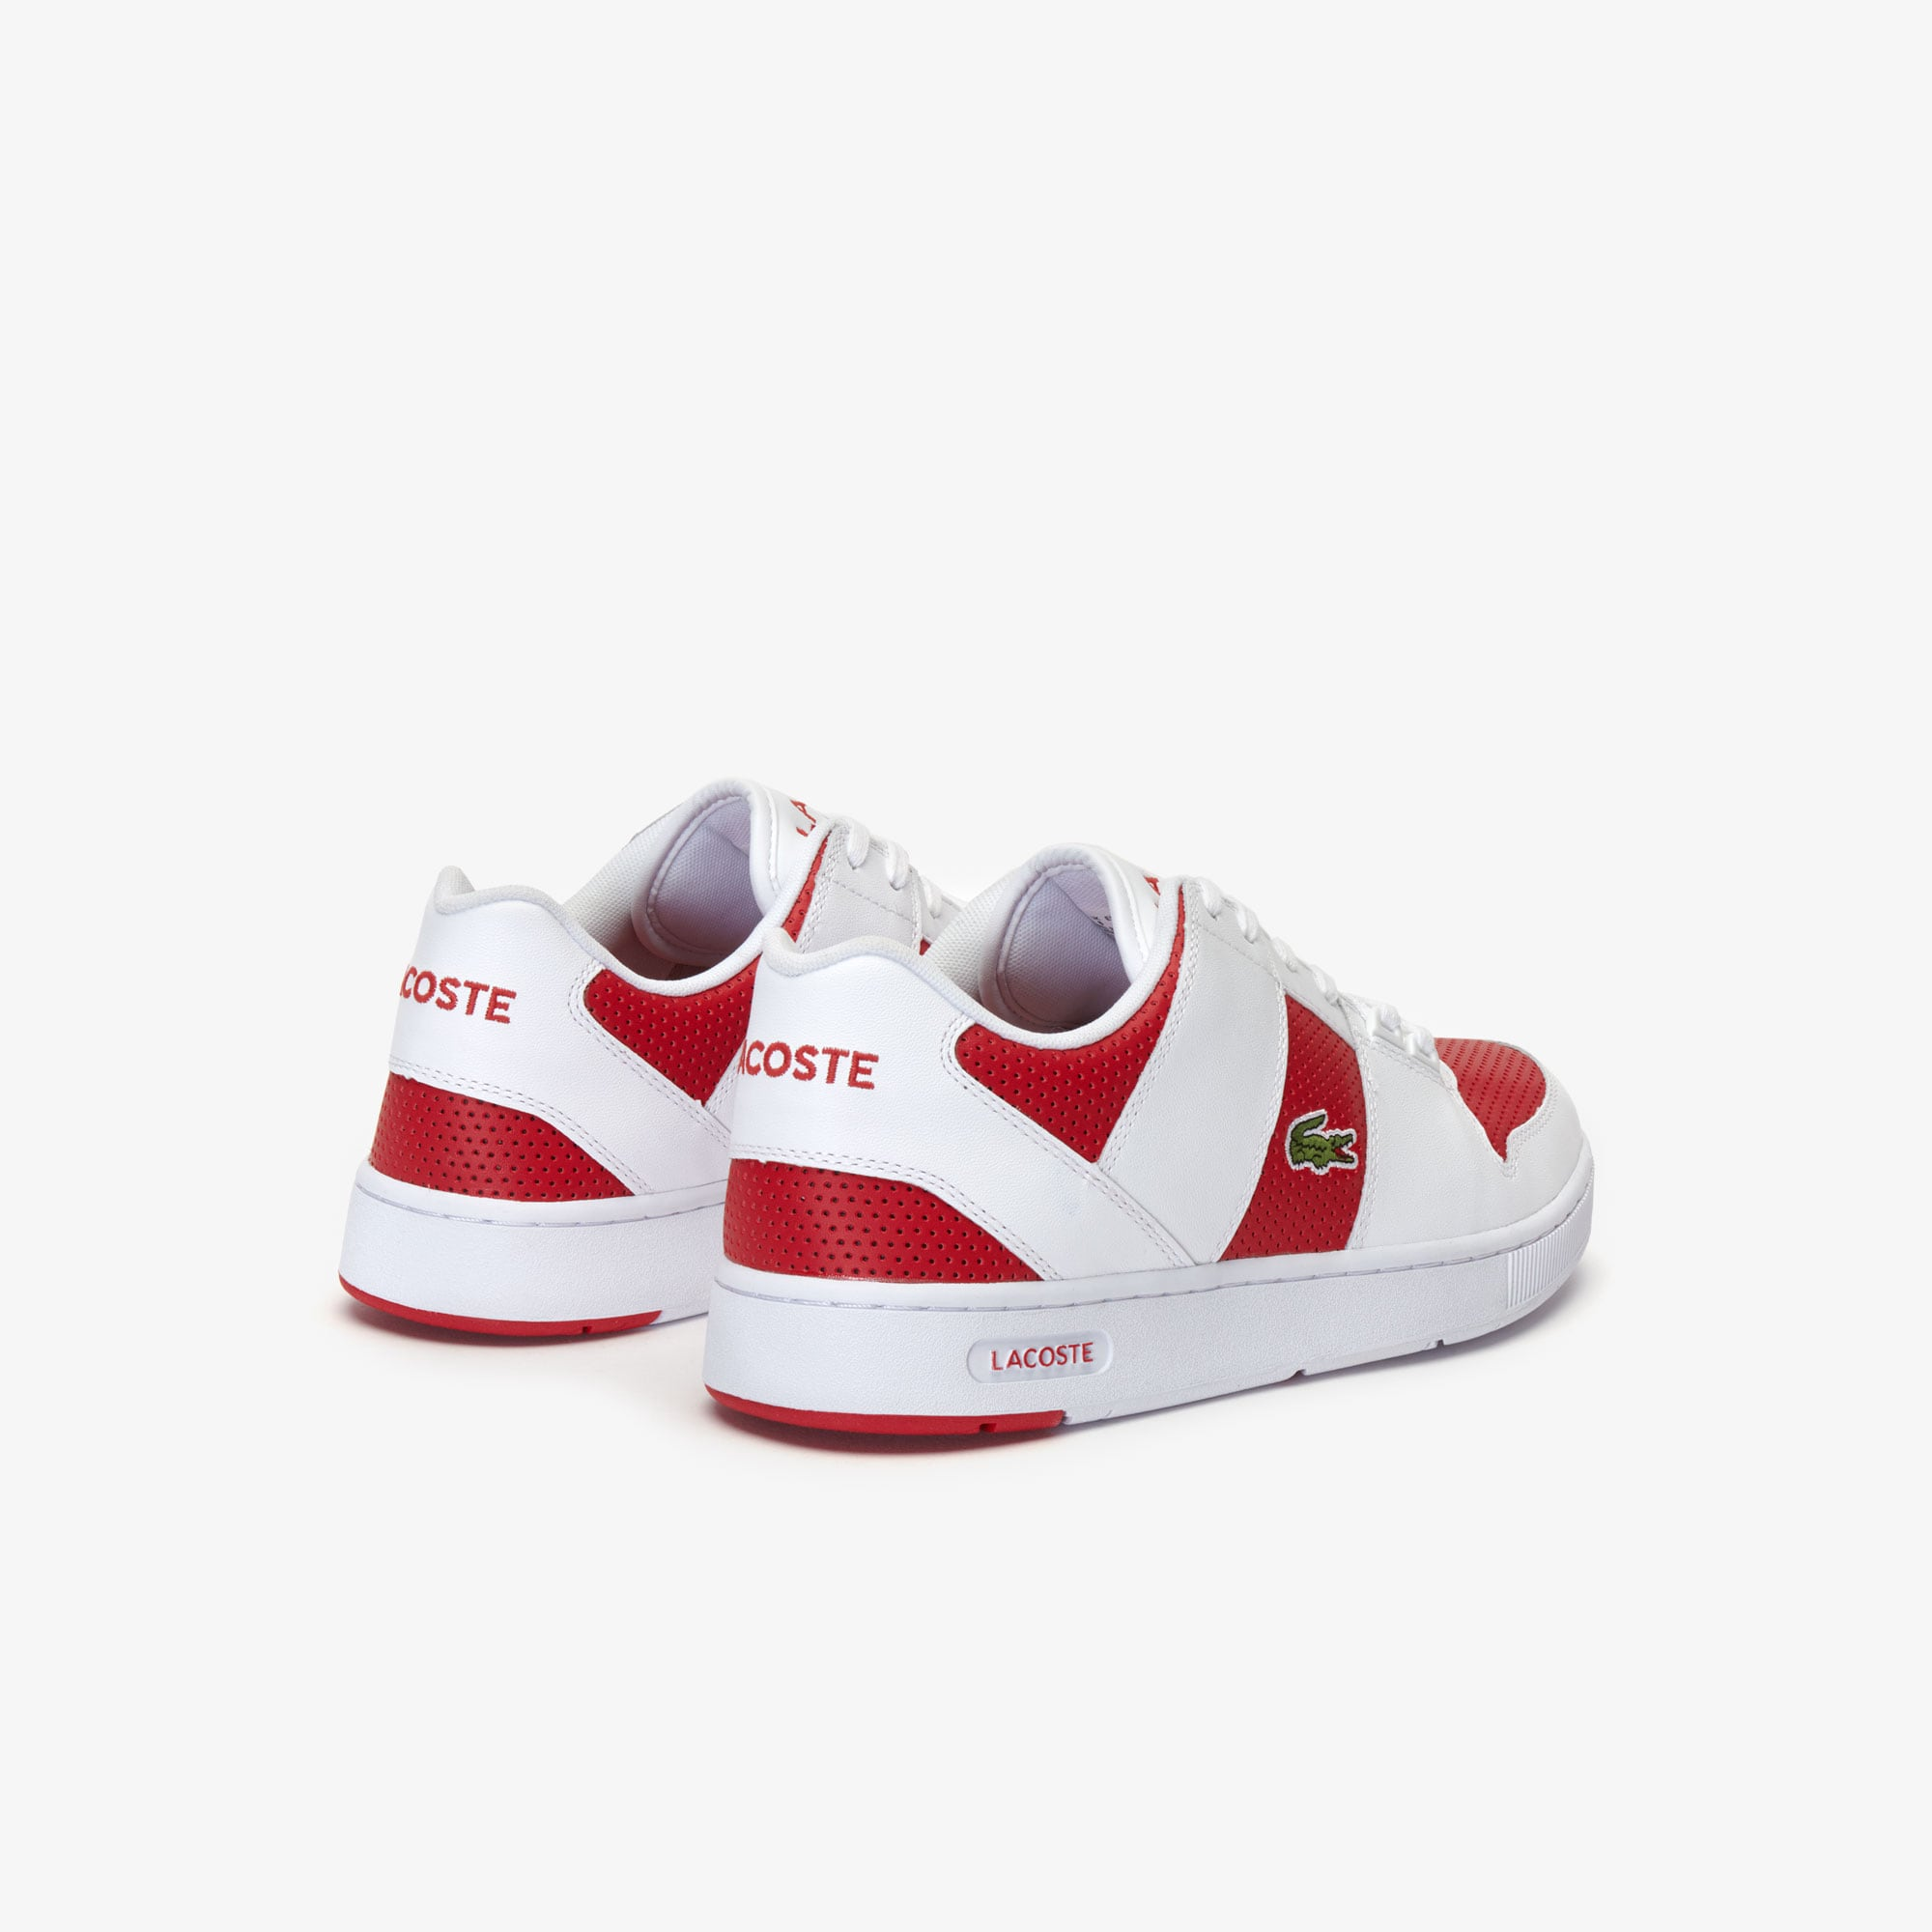 Sneakers da uomo in pelle bicolore Thrill